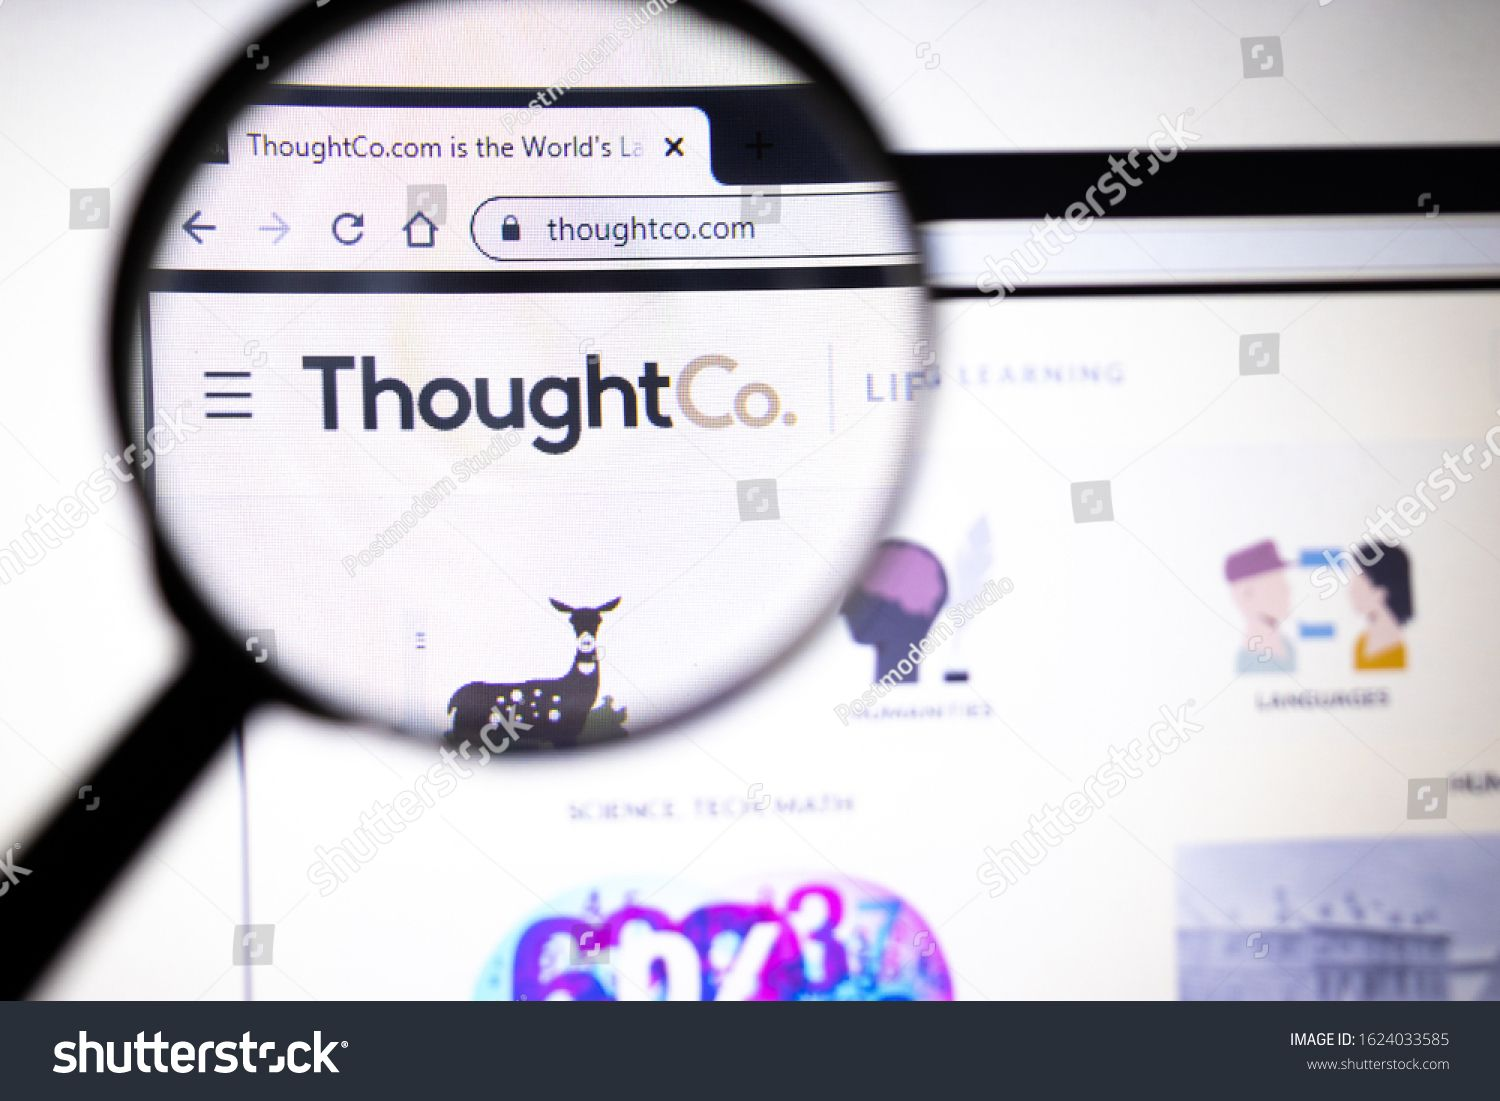 Los Angeles California Usa 23 January 2020 Thoughtco Website Page Thoughtco Com Logo On Display Screen Illus In 2020 California Hollywood California Los Angeles